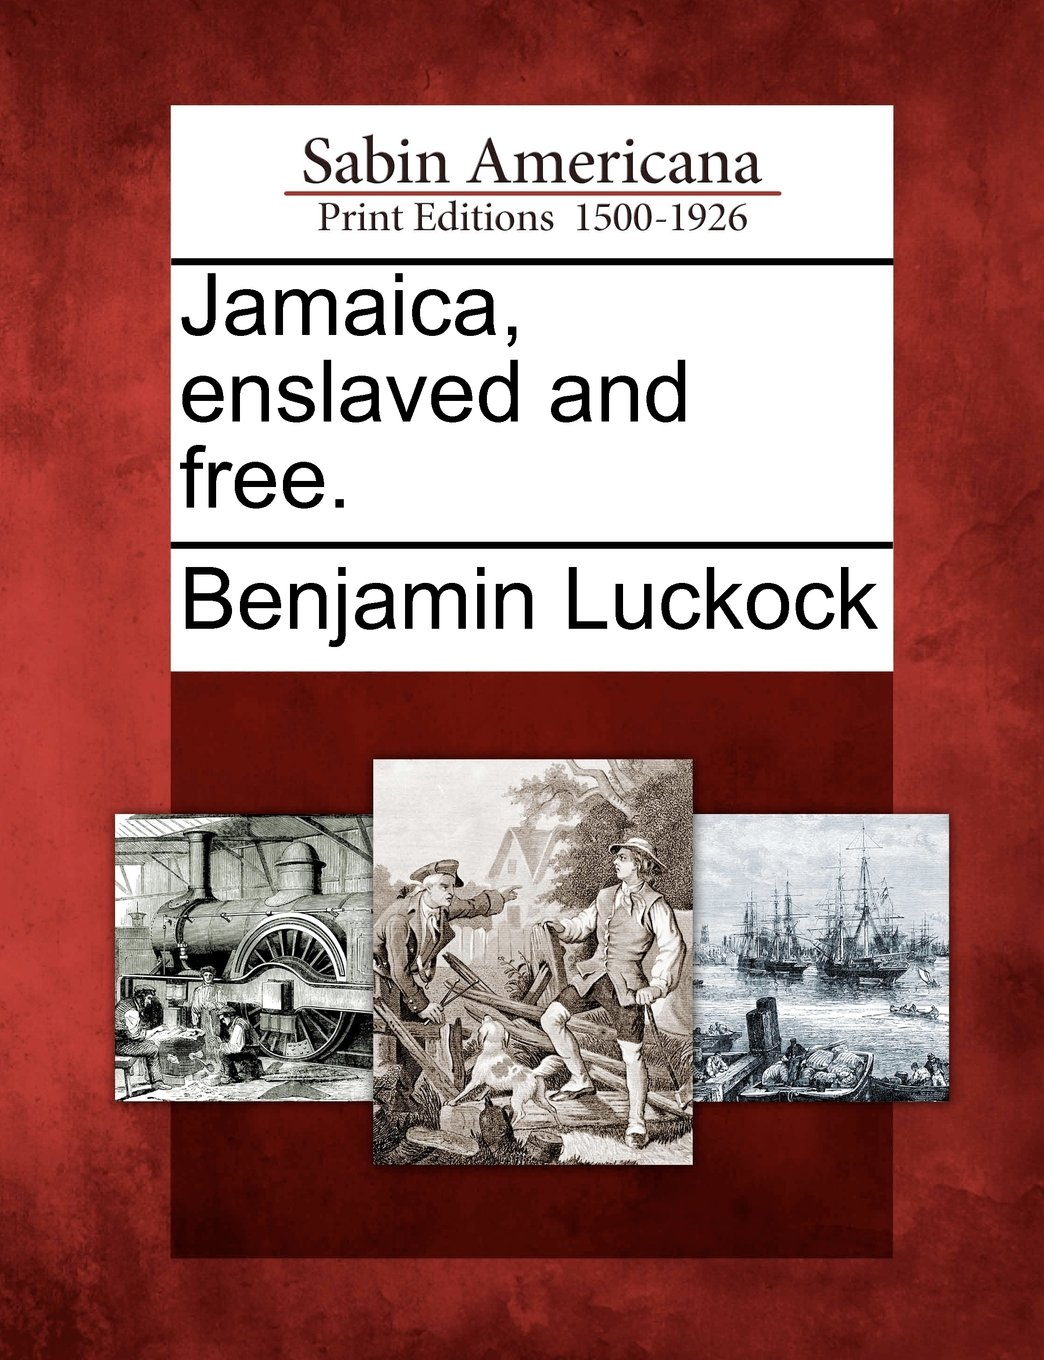 Jamaica, enslaved and free.